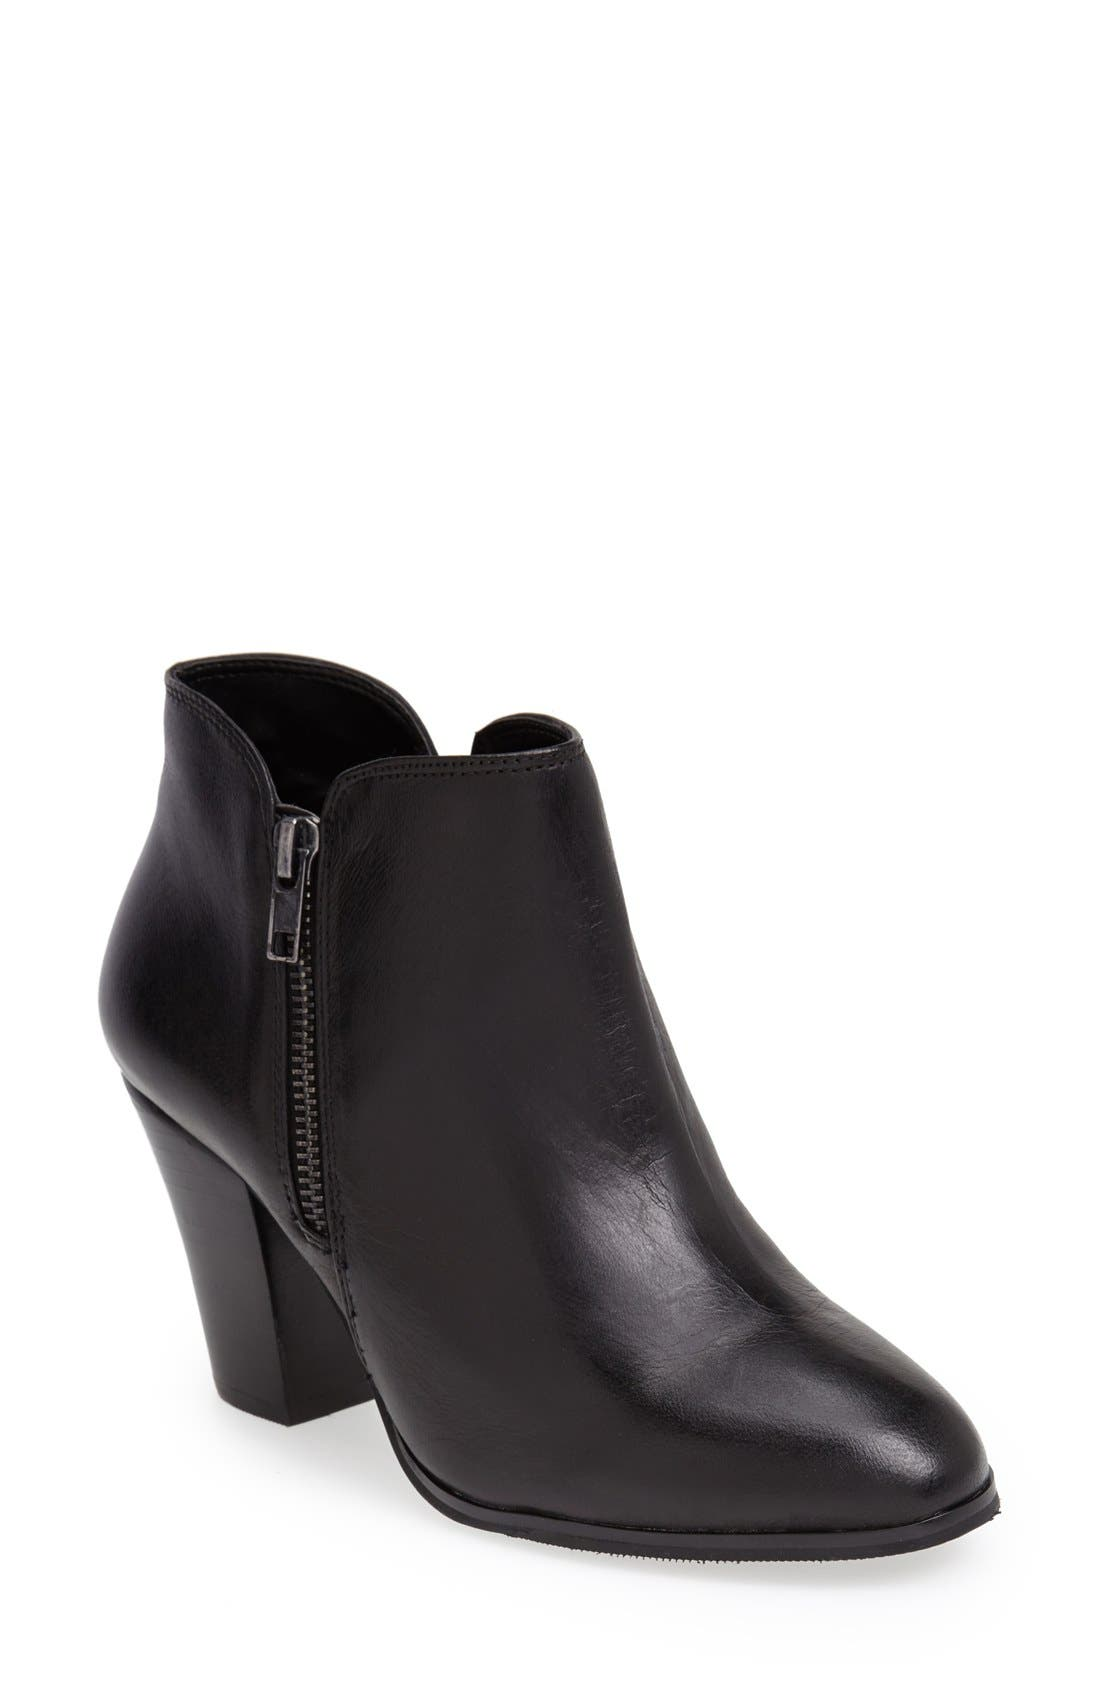 Main Image - Sole Society 'Chelsa' Bootie (Women)